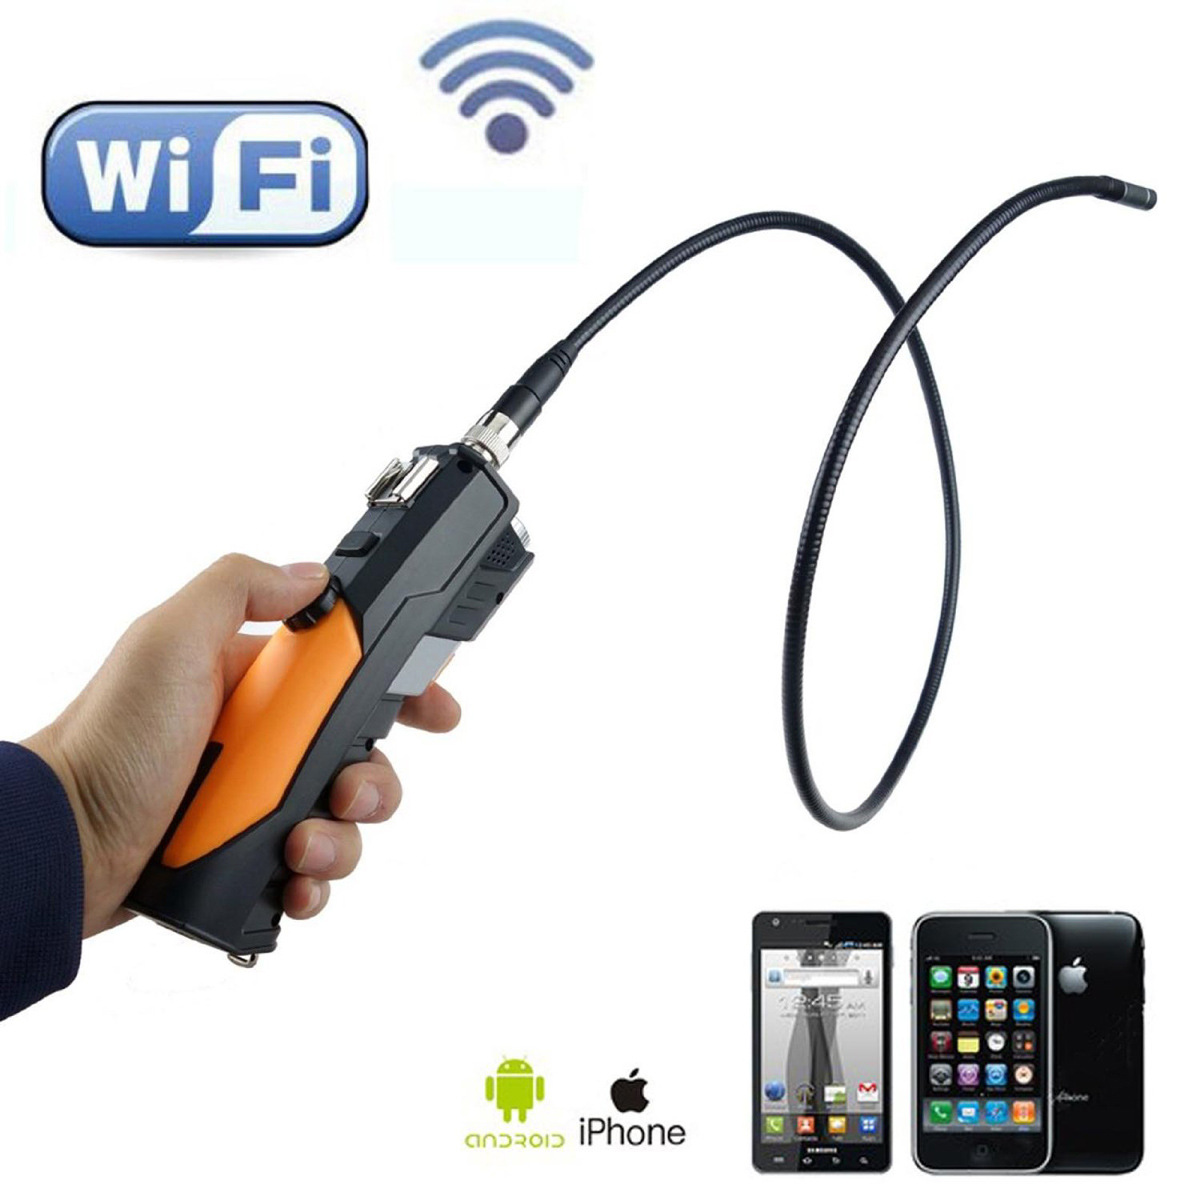 For 1M Hand-held WiFi HD720p Wireless Endoscope Video Borescope Camera 4 PC iOS Android Tablet детская игрушка new wifi ios